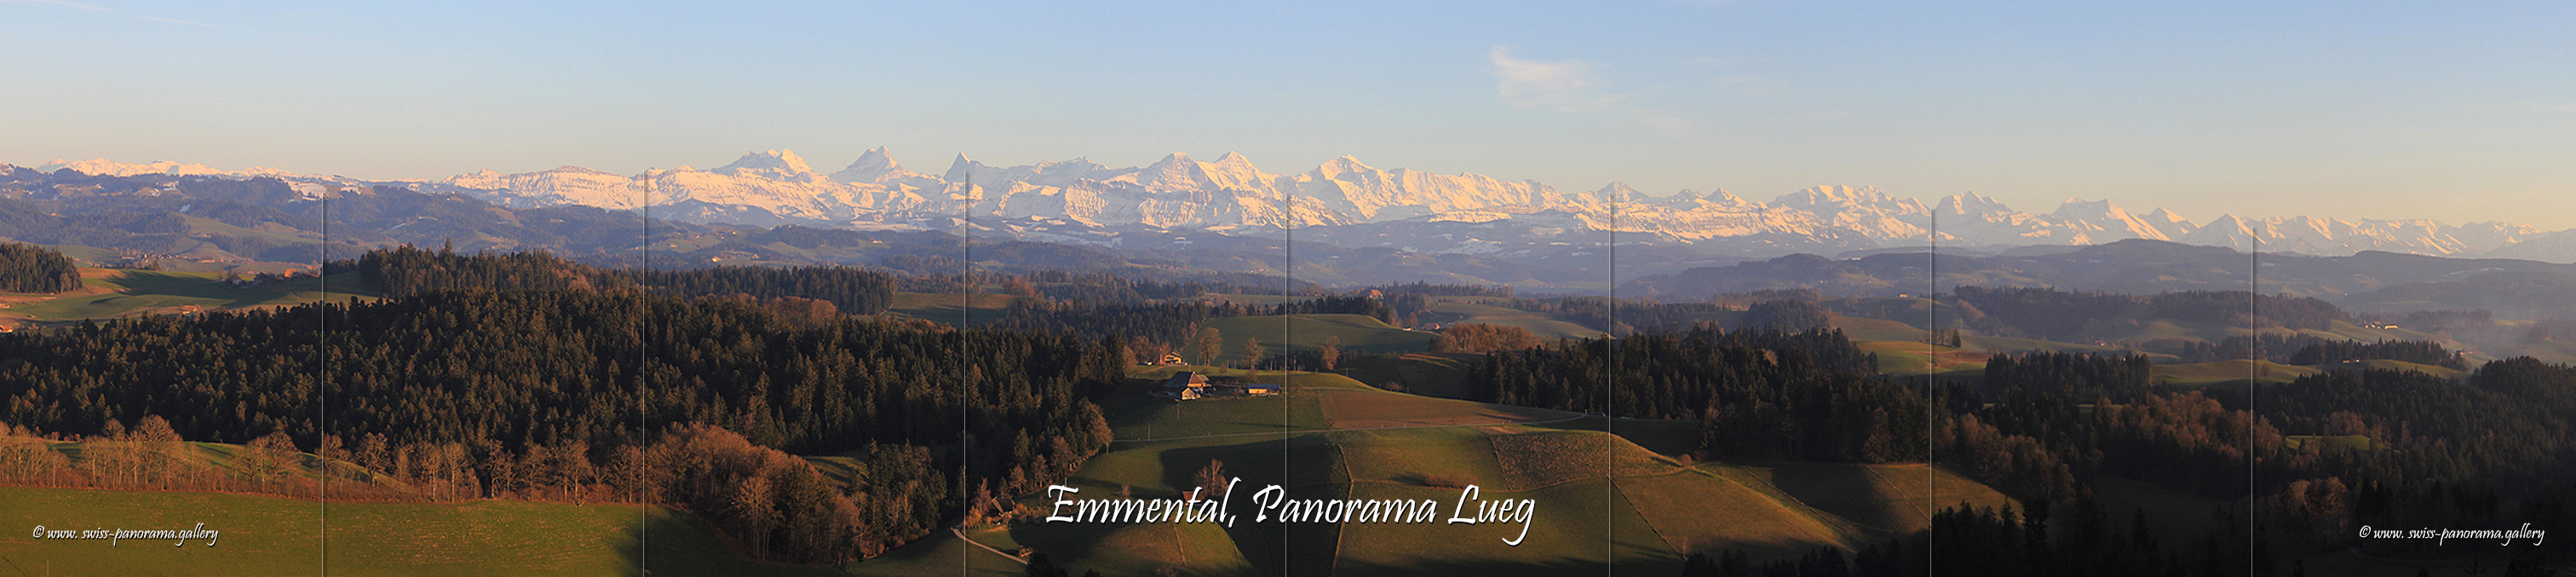 Swiss Panorama Emmenthal